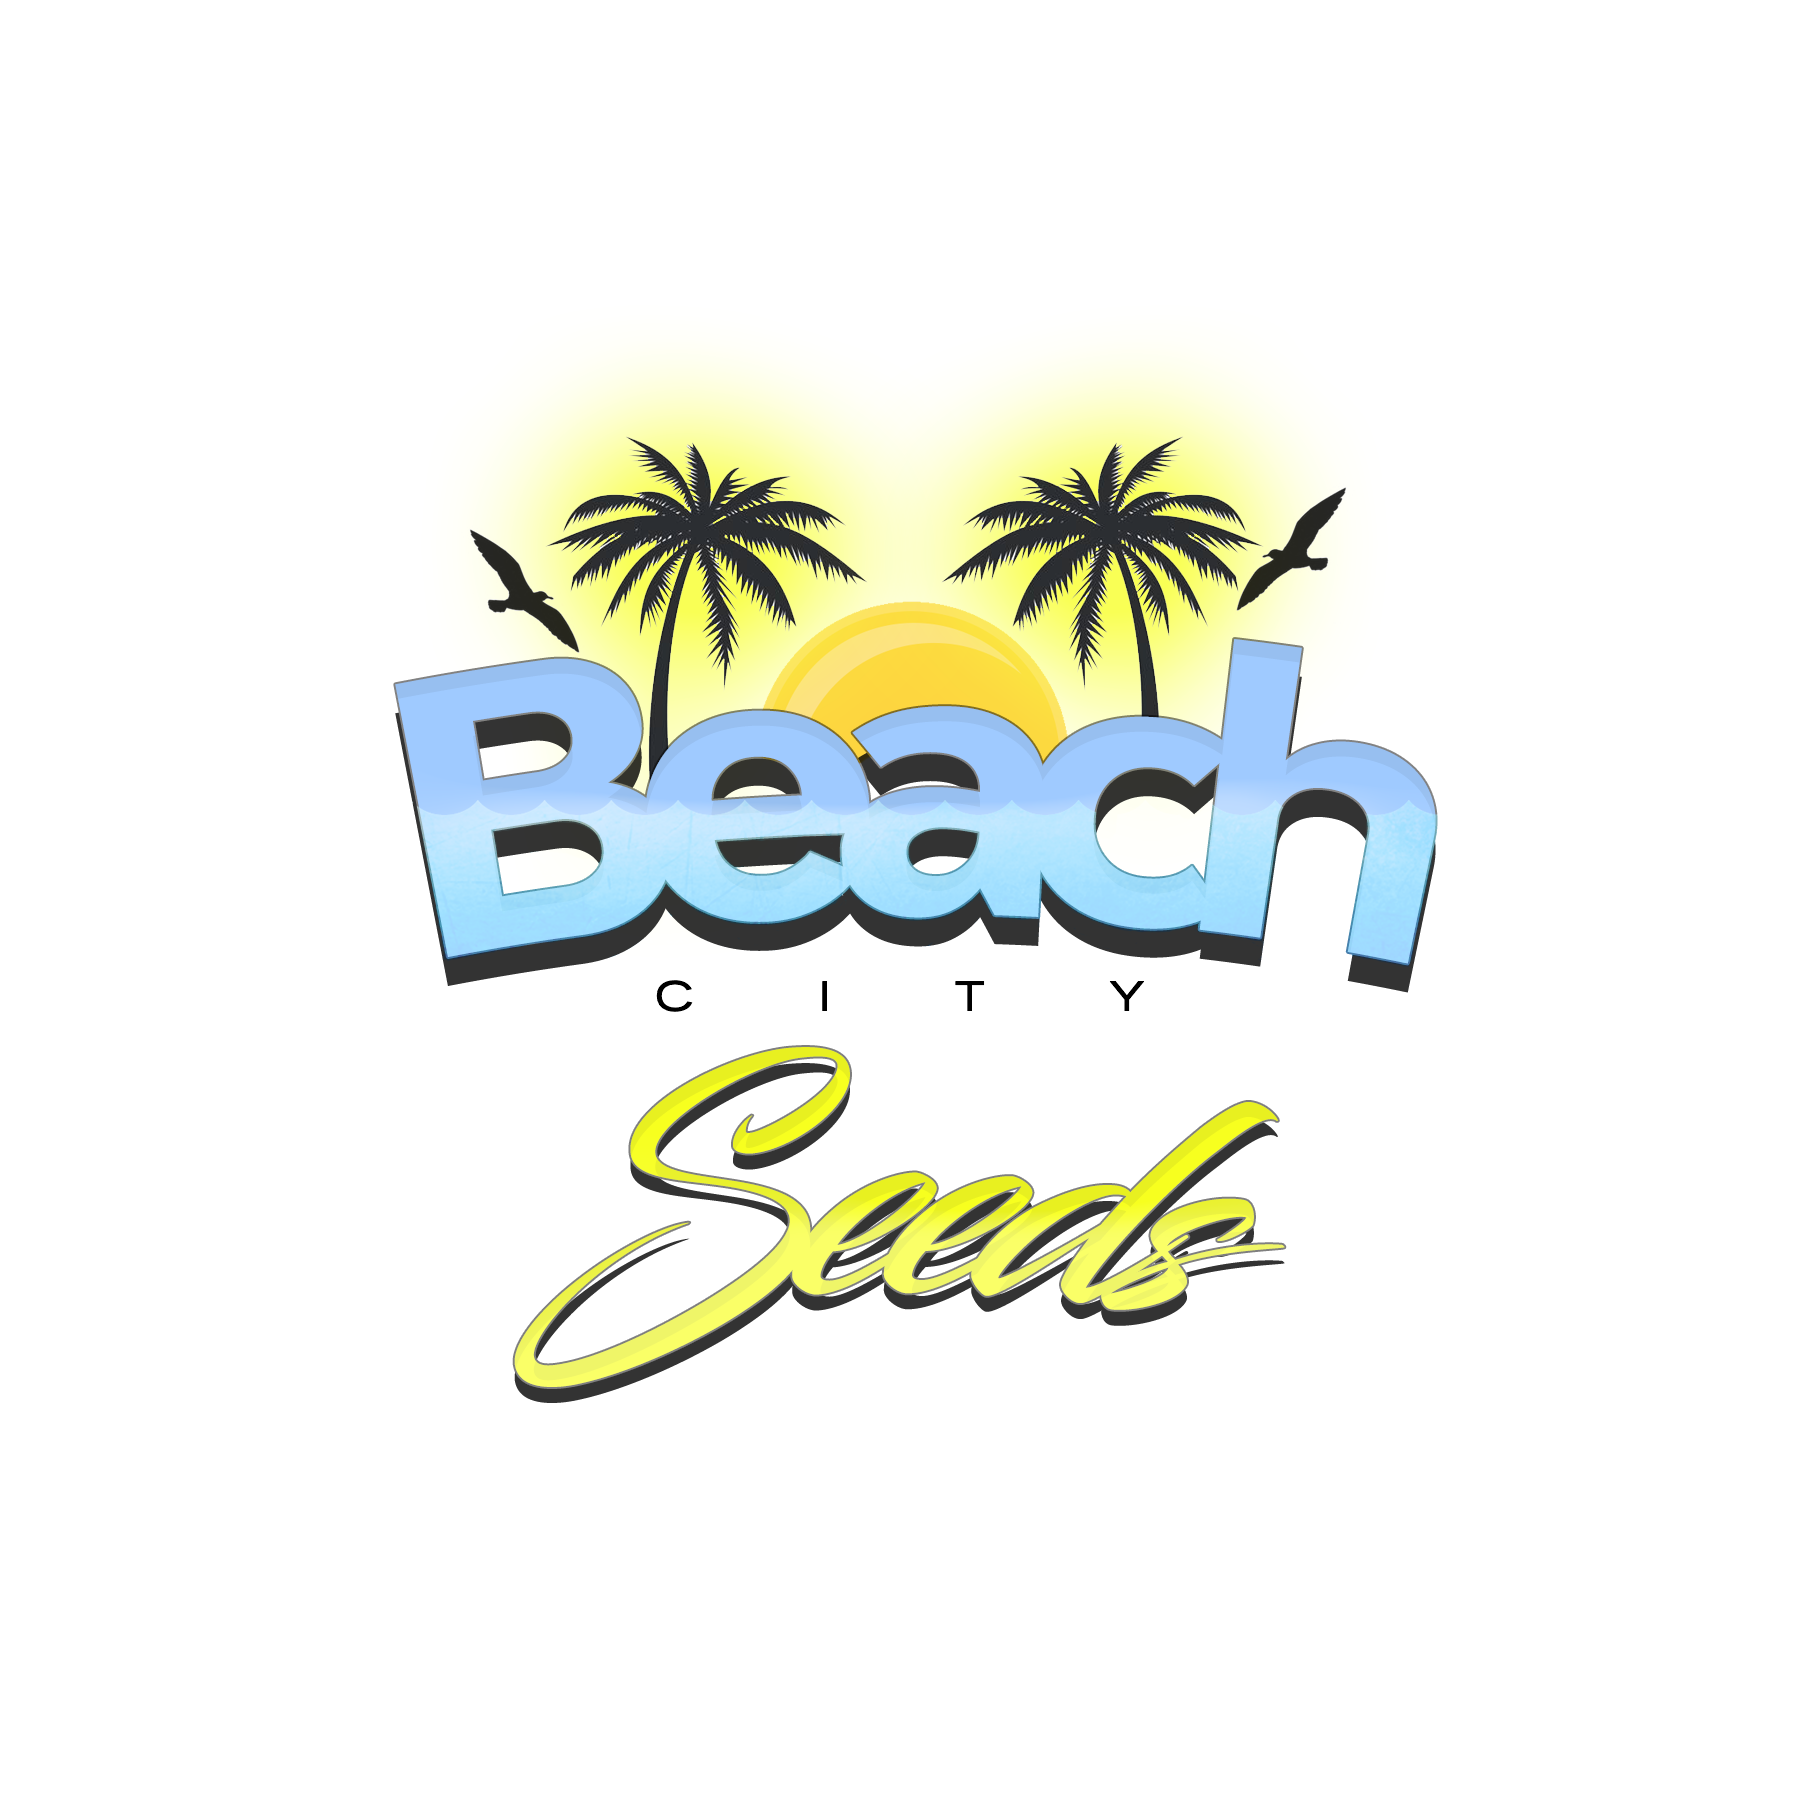 Beach City Seeds